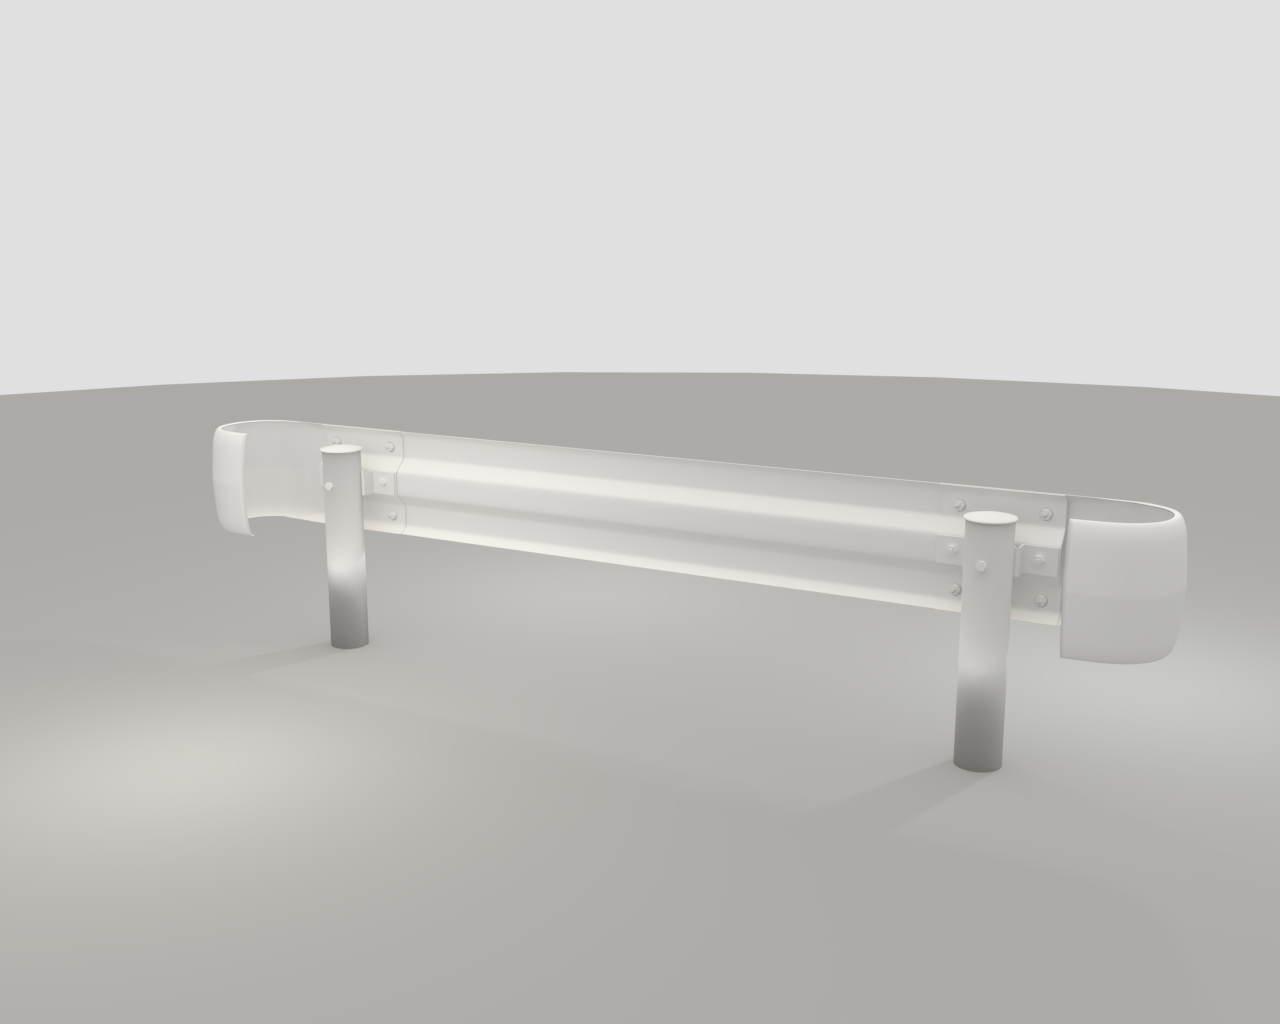 guardrail in japan 3d model fbx 282218